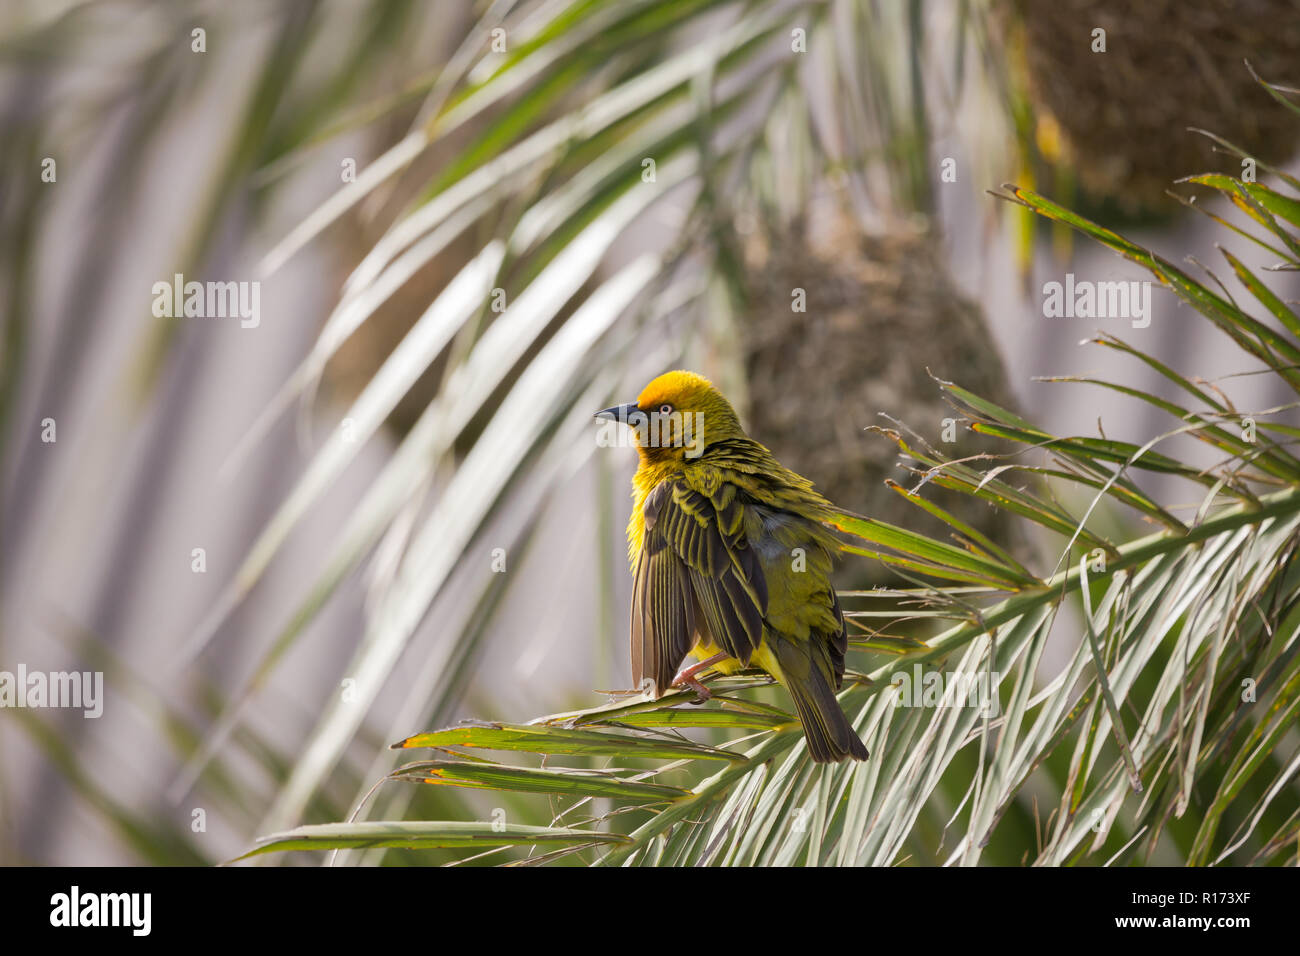 yellow Cape Weaver bird (Ploceus capensis) perches on palm tree frond in front of a woven nest of grass with ruffled feathers and puffed up - Stock Image